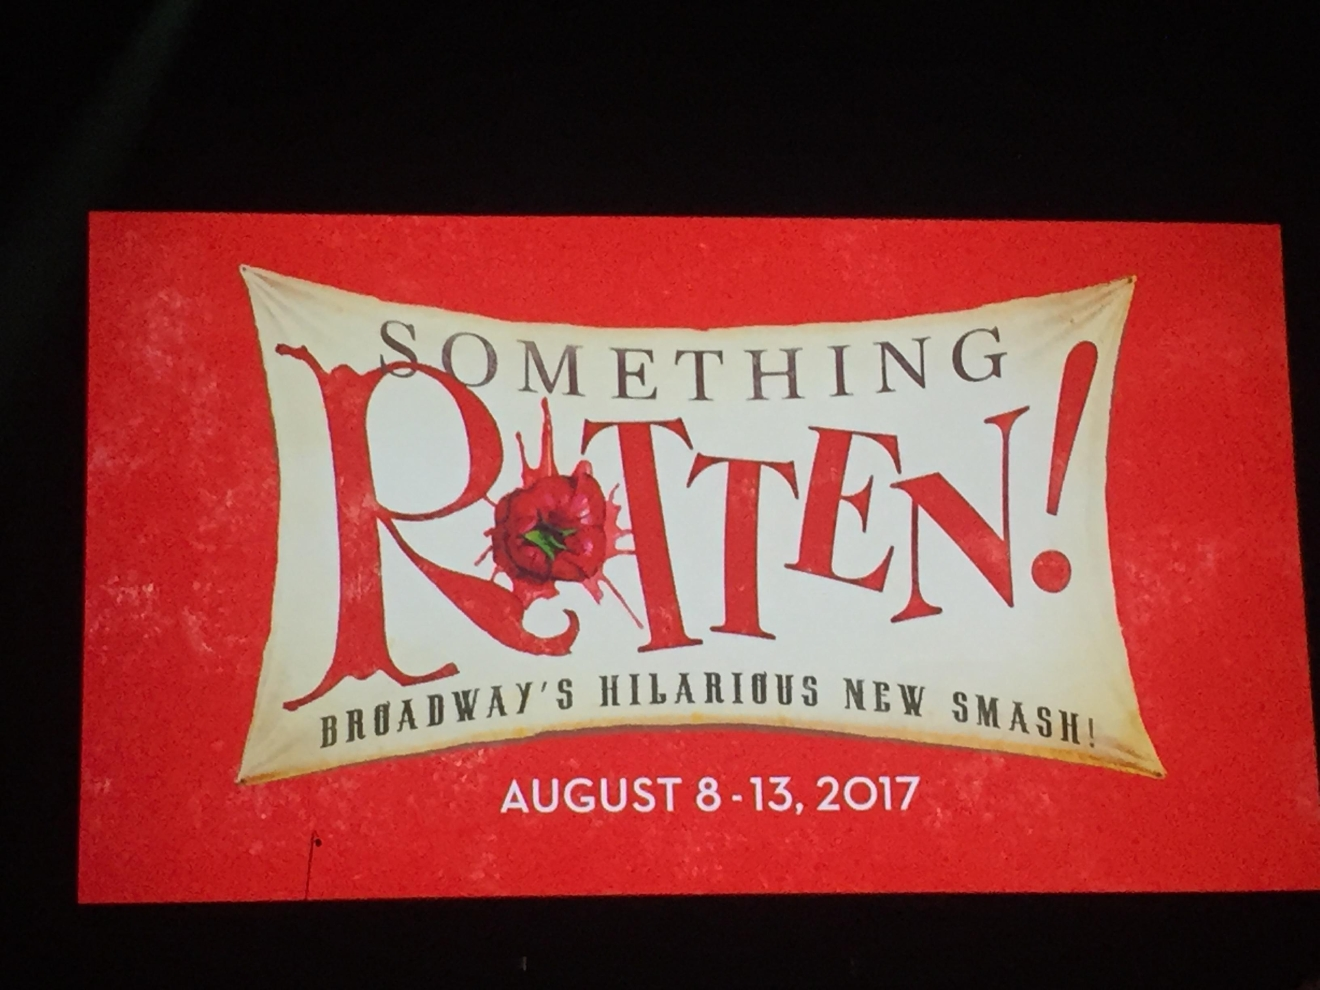 Something Rotten! was revealed as an upcoming tour during the Smith Center for the Performing Arts 2017-2018 Broadway series preview Tuesday, Feb. 28, 2017, in Reynolds Hall. It will run in Las Vegas from Aug. 8-13, 2017 (Jami Seymore | KSNV)